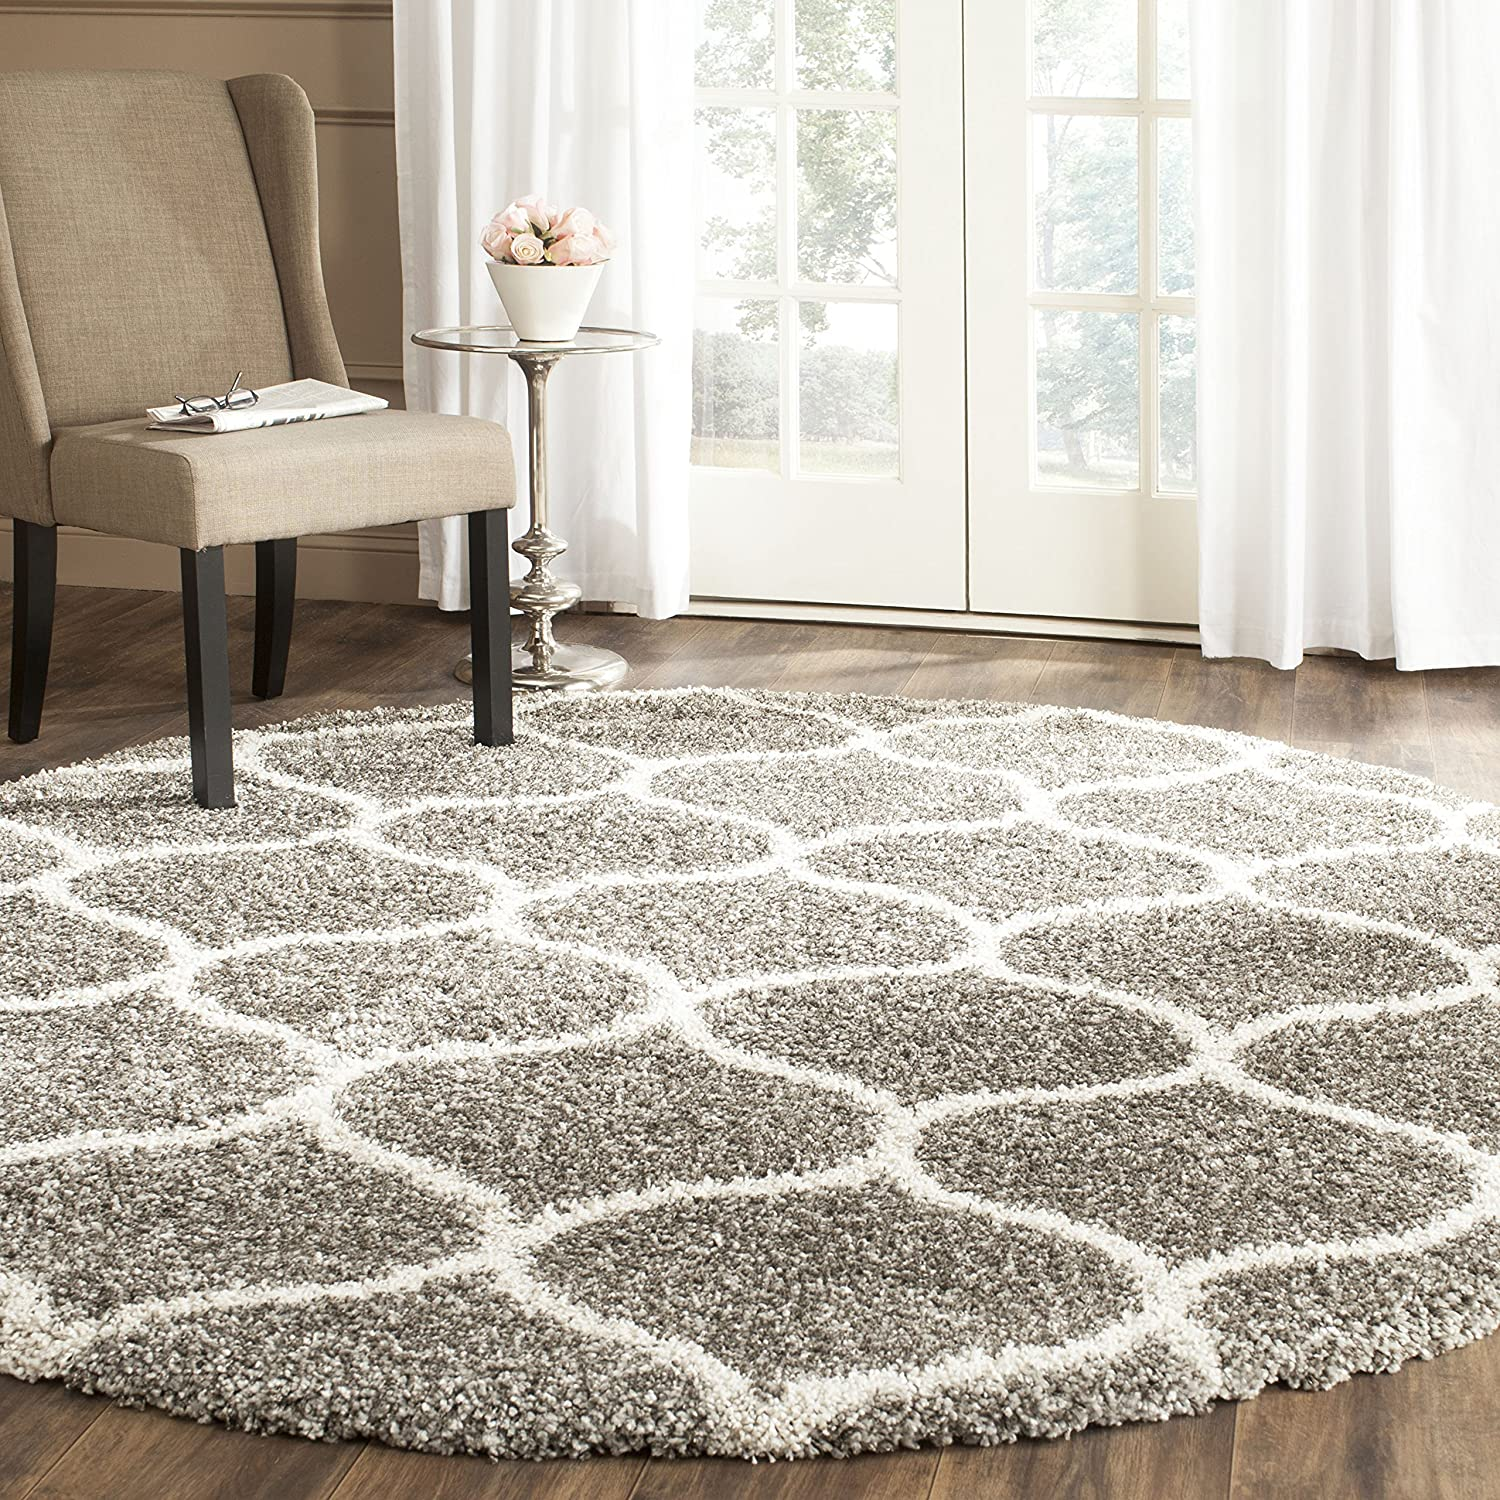 Safavieh Hudson Shag CollectionGrey and Ivory Moroccan Ogee Plush Round Area Rug (7' Diameter)